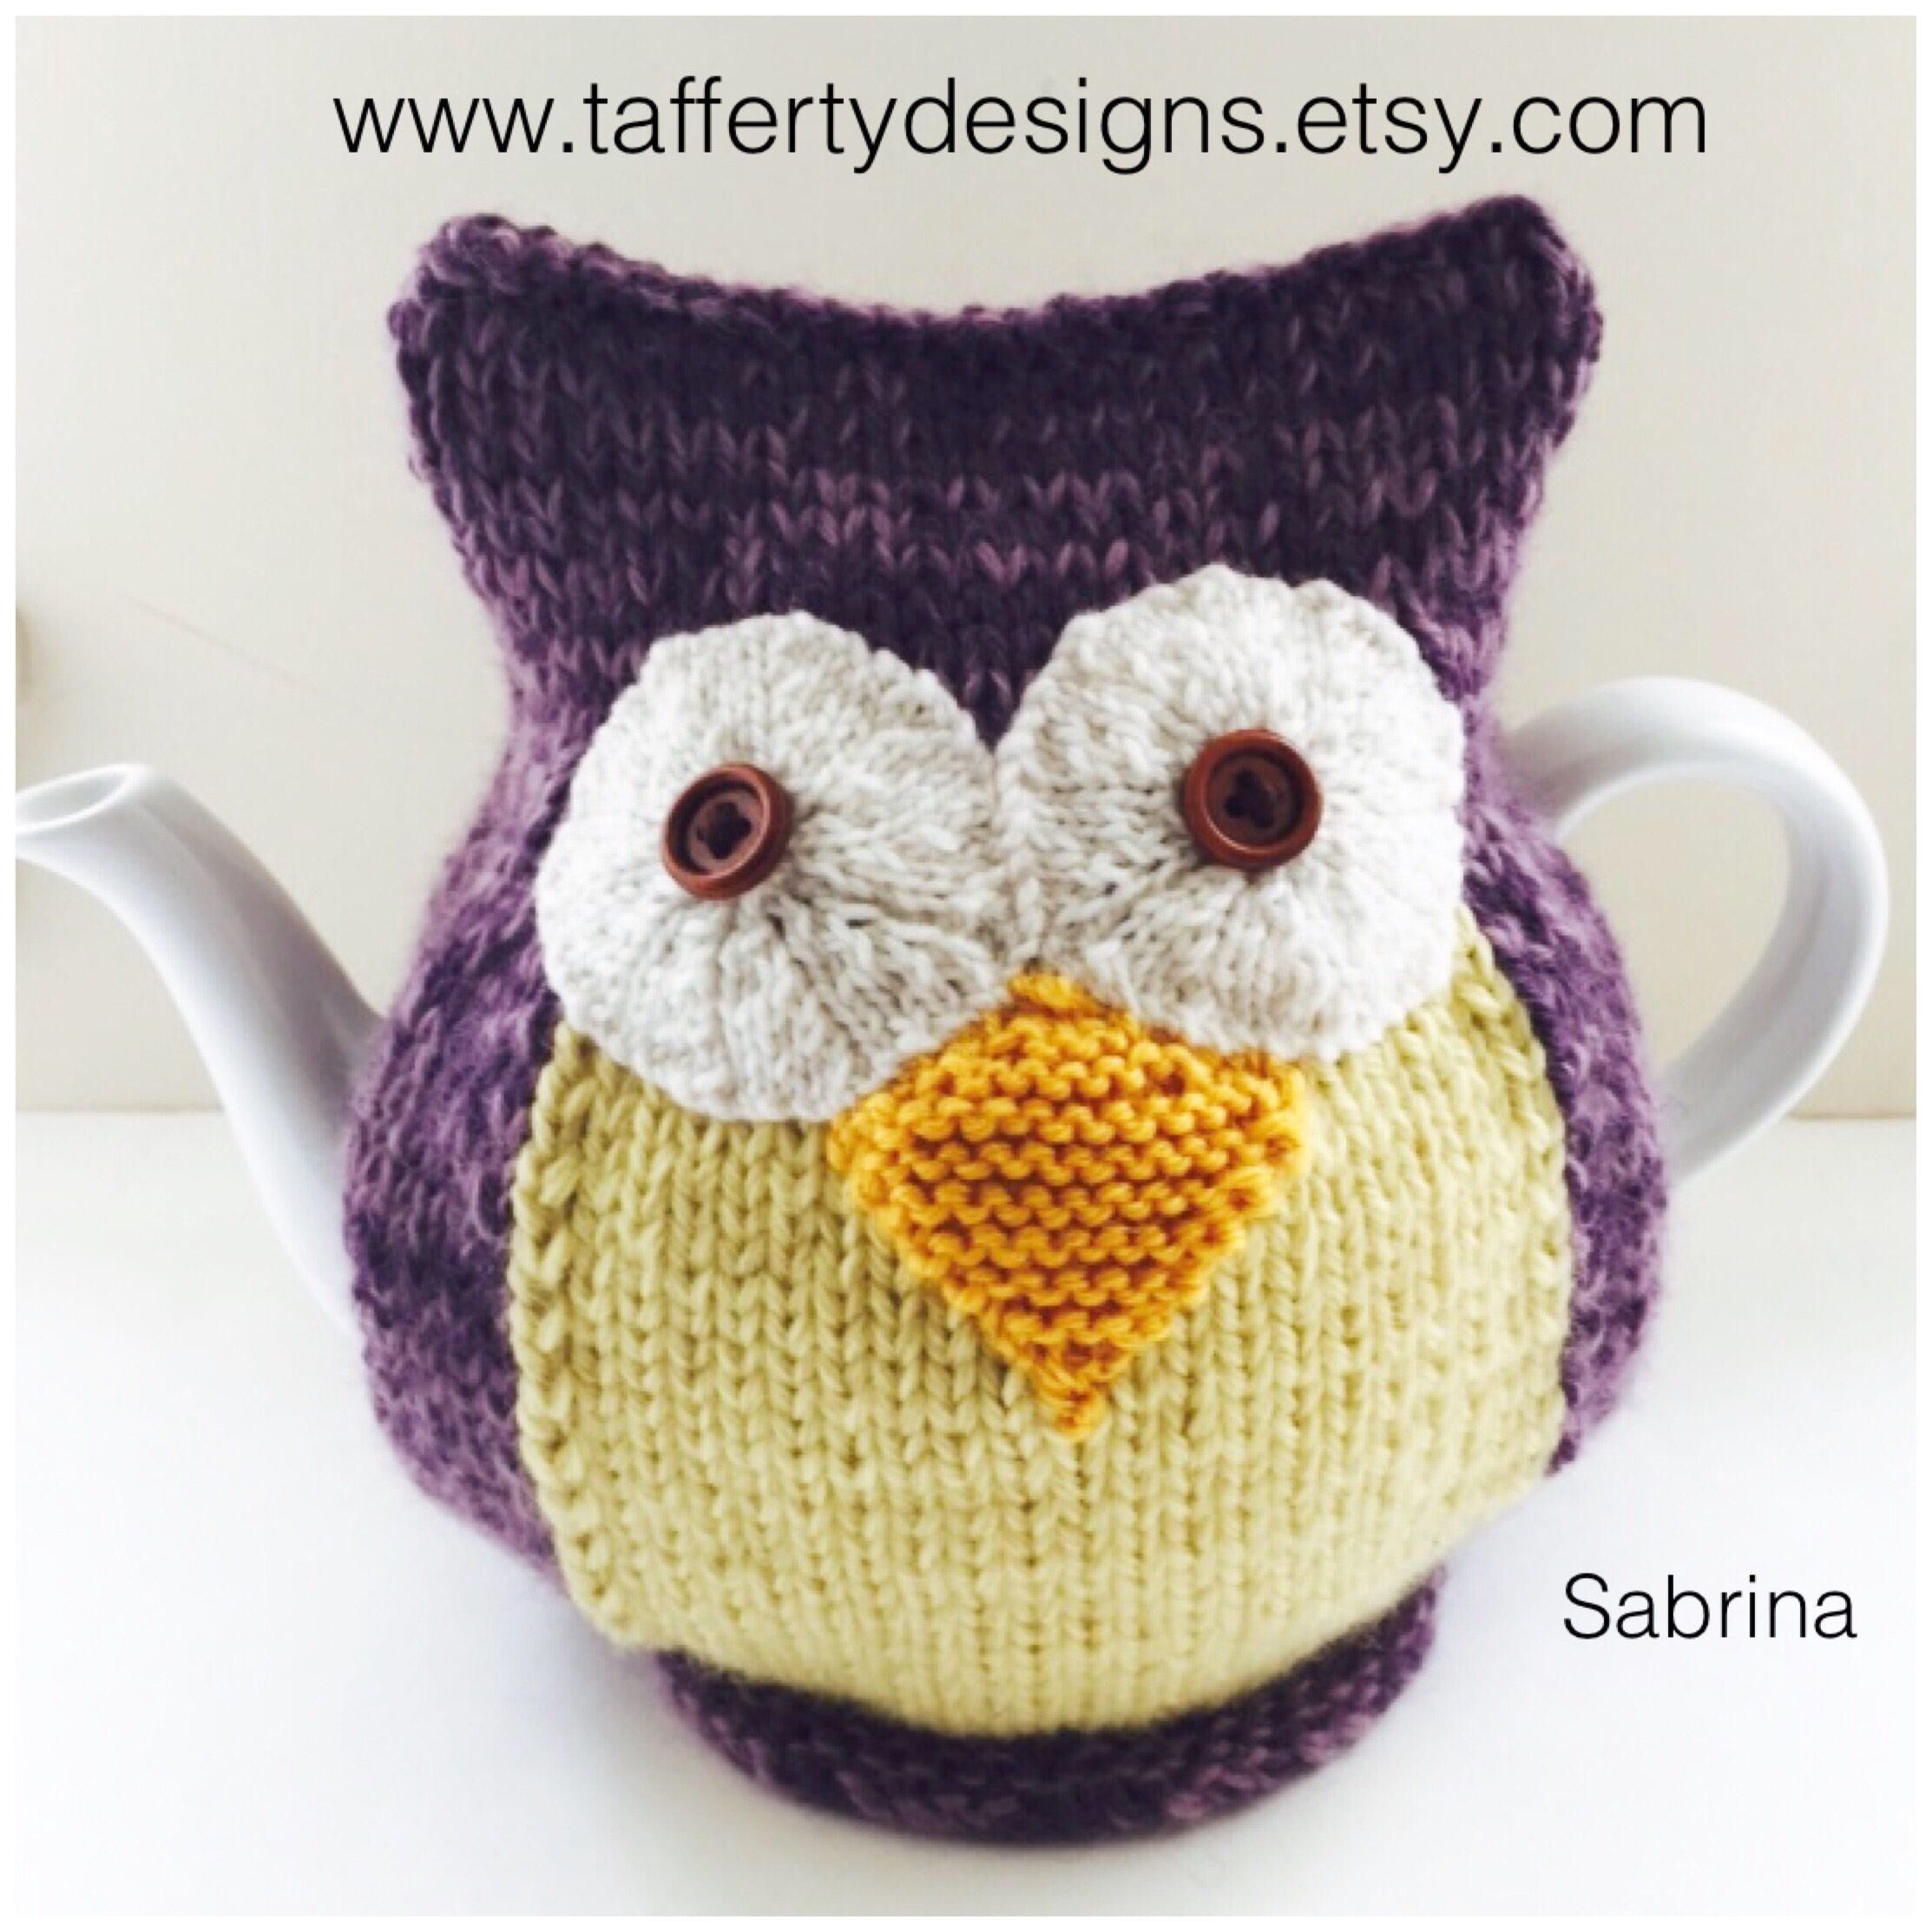 Let Sabrina the owl be your personal tea warmer. https://www.etsy ...